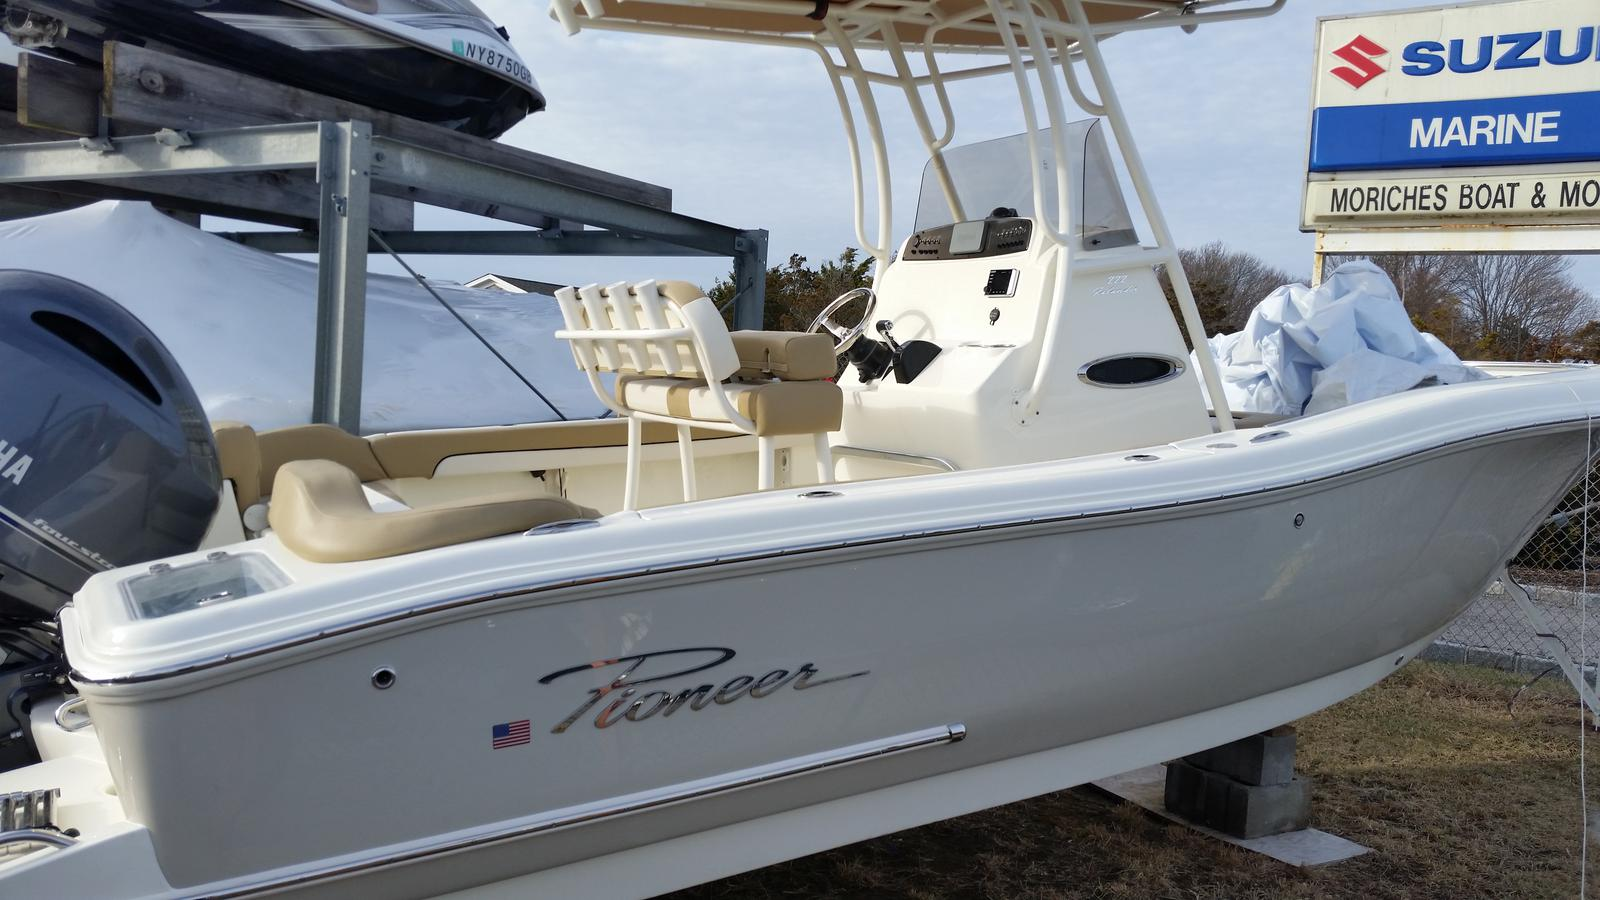 New pioneer boats for sale for Moriches boat and motor